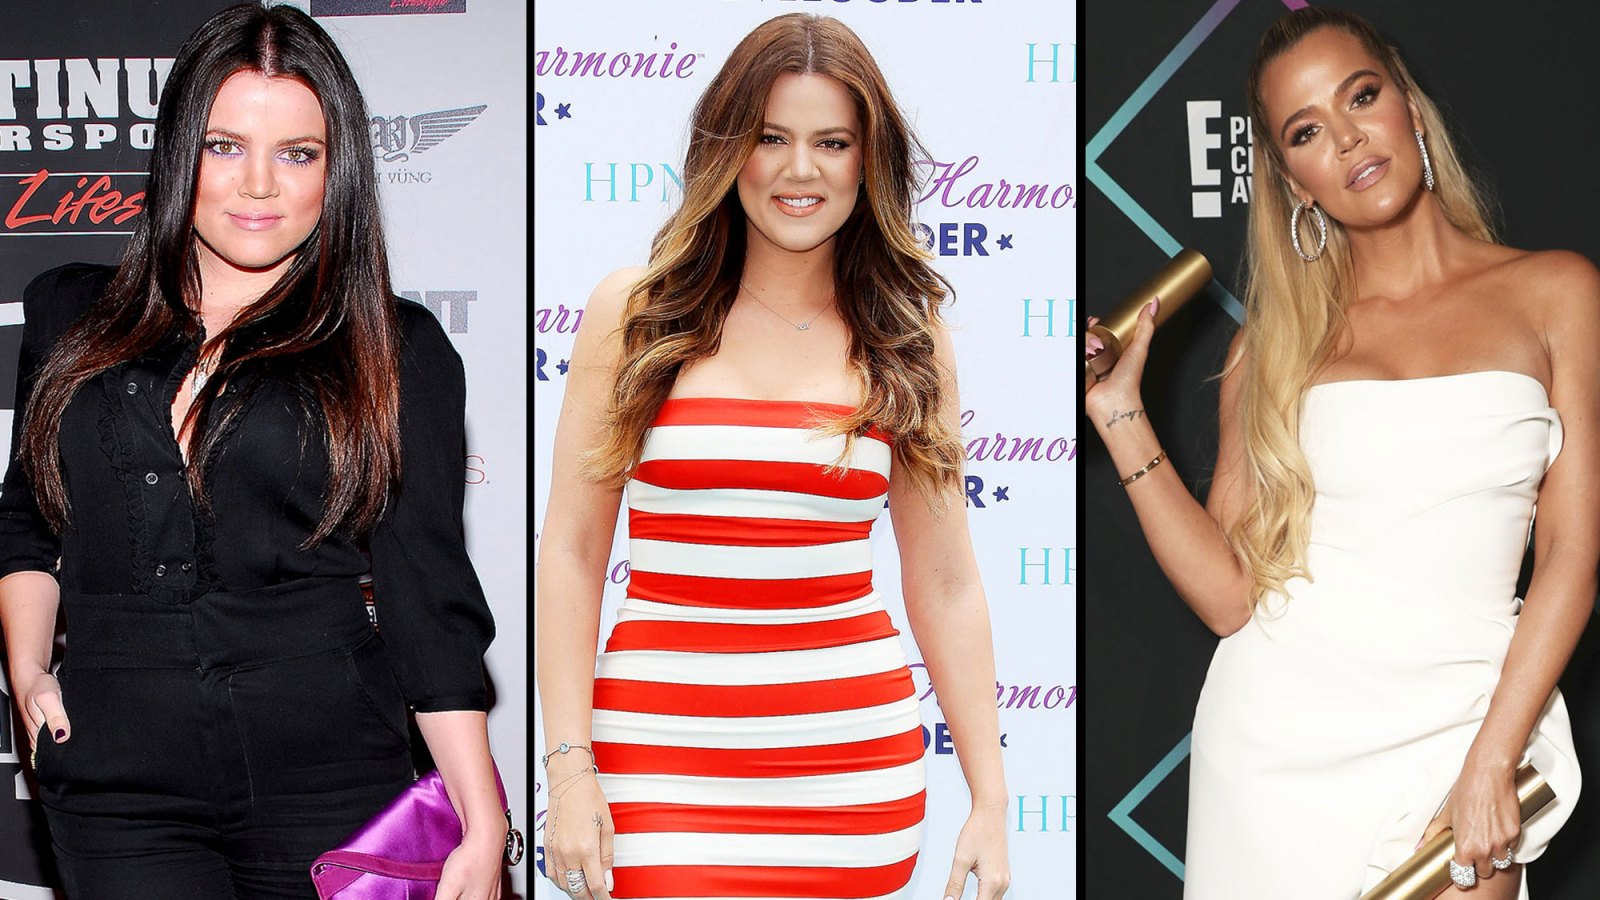 7a24ab1e Khloe Kardashian's Body Evolution Through Pregnancy, Weight Loss and  Relationship Drama